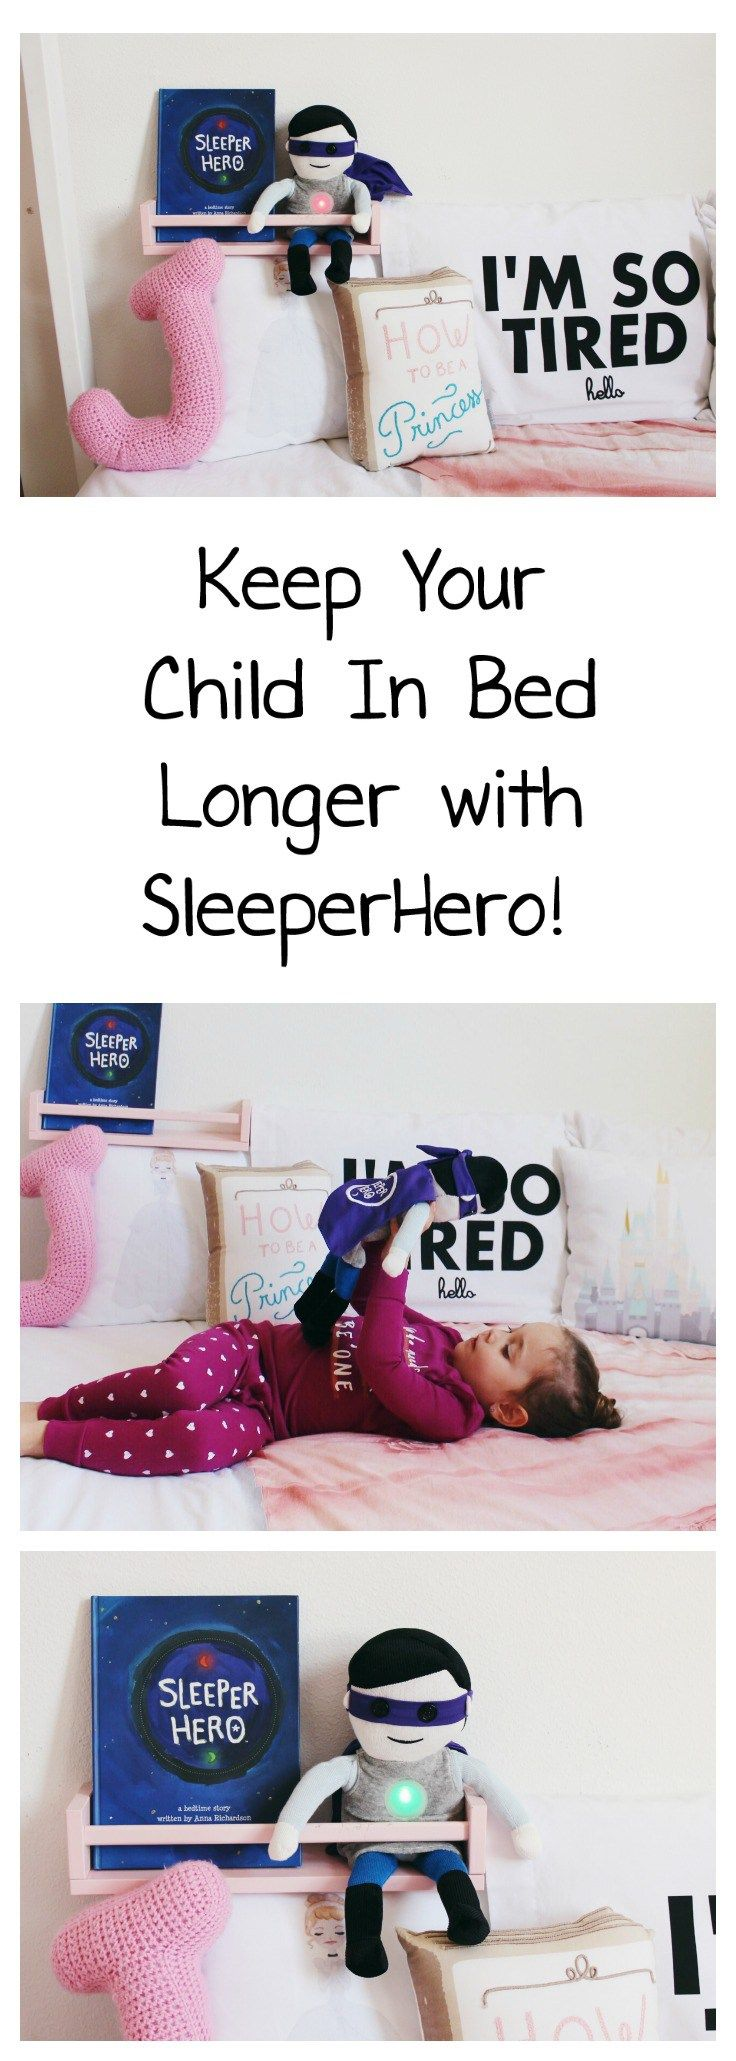 Keep Early Risers In Bed With SleeperHero - Oh Happy Play | OK to wake clock | Stay In Bed Clock | SleeperHero | Sleeper Hero | Bedtime Routine | Sleep through the night | Early Risers Stay In Bed | Super Hero Doll | Super Hero For Girls | Girl Room | House Frame Floor Bed | Montessori Room | I'm So Tired | Bedtime Routine | Night Time Routine | Kids bedtime story